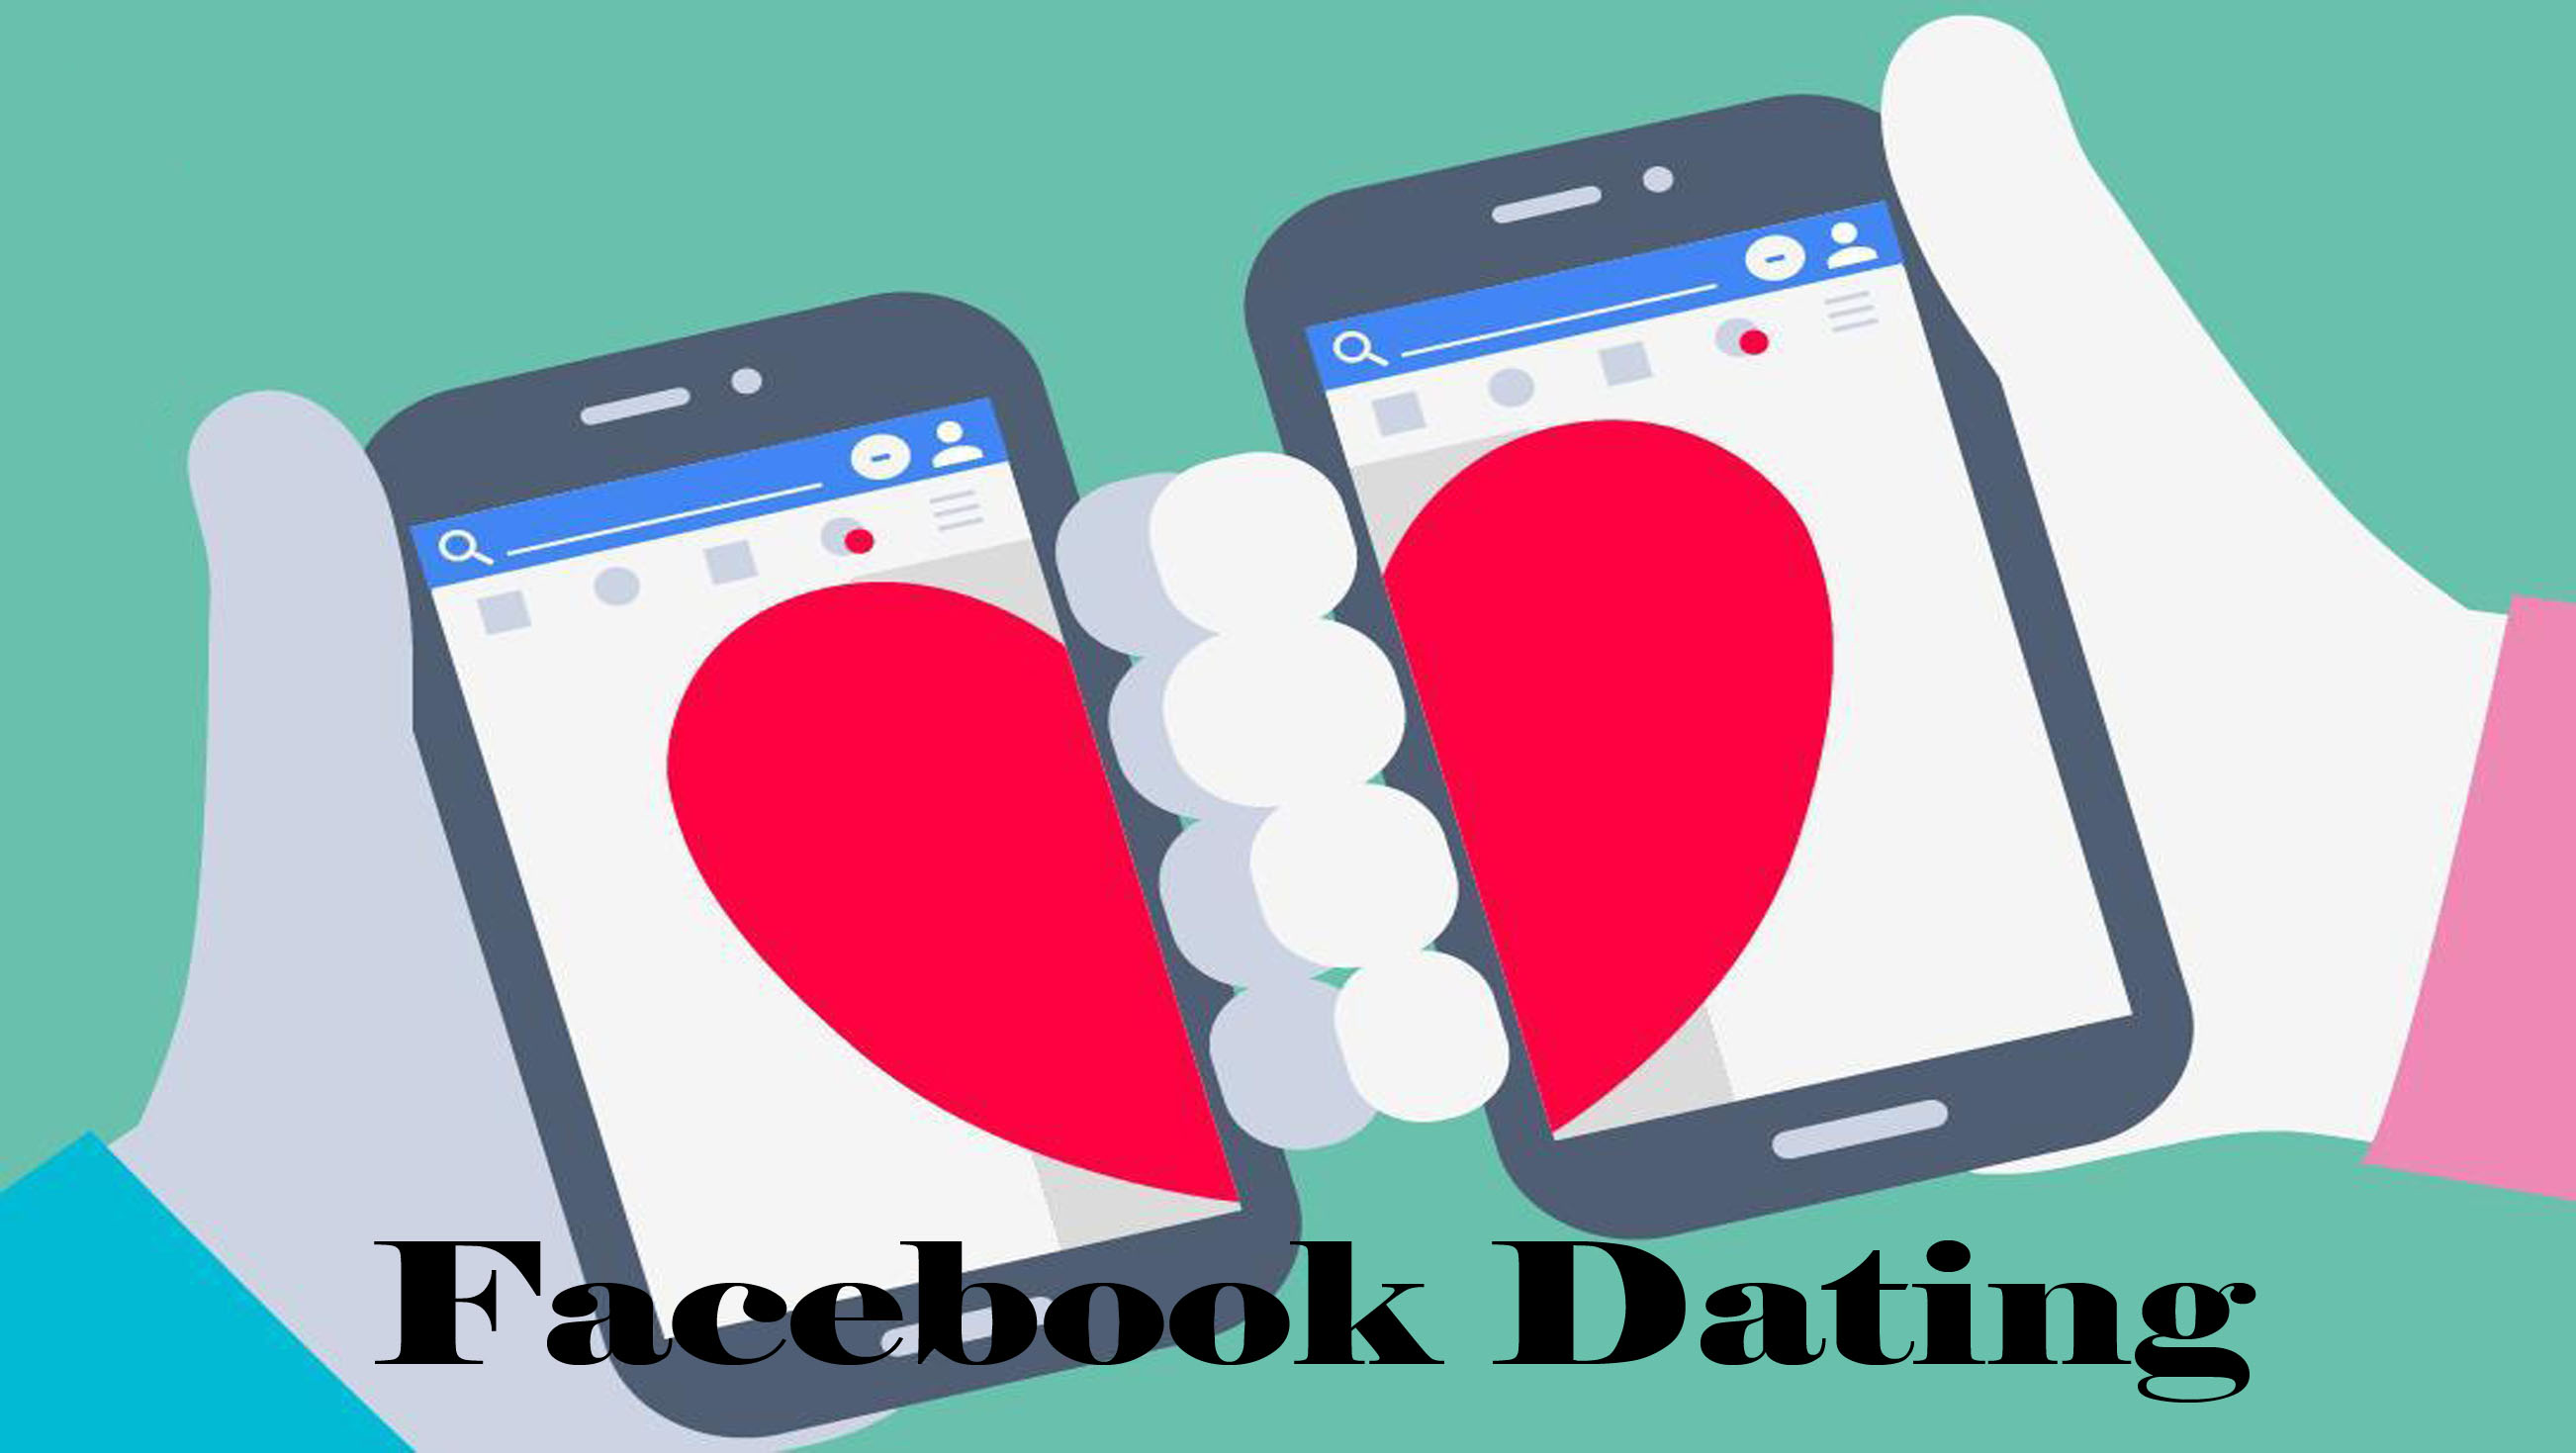 Facebook Dating - Ways to Date on Facebook